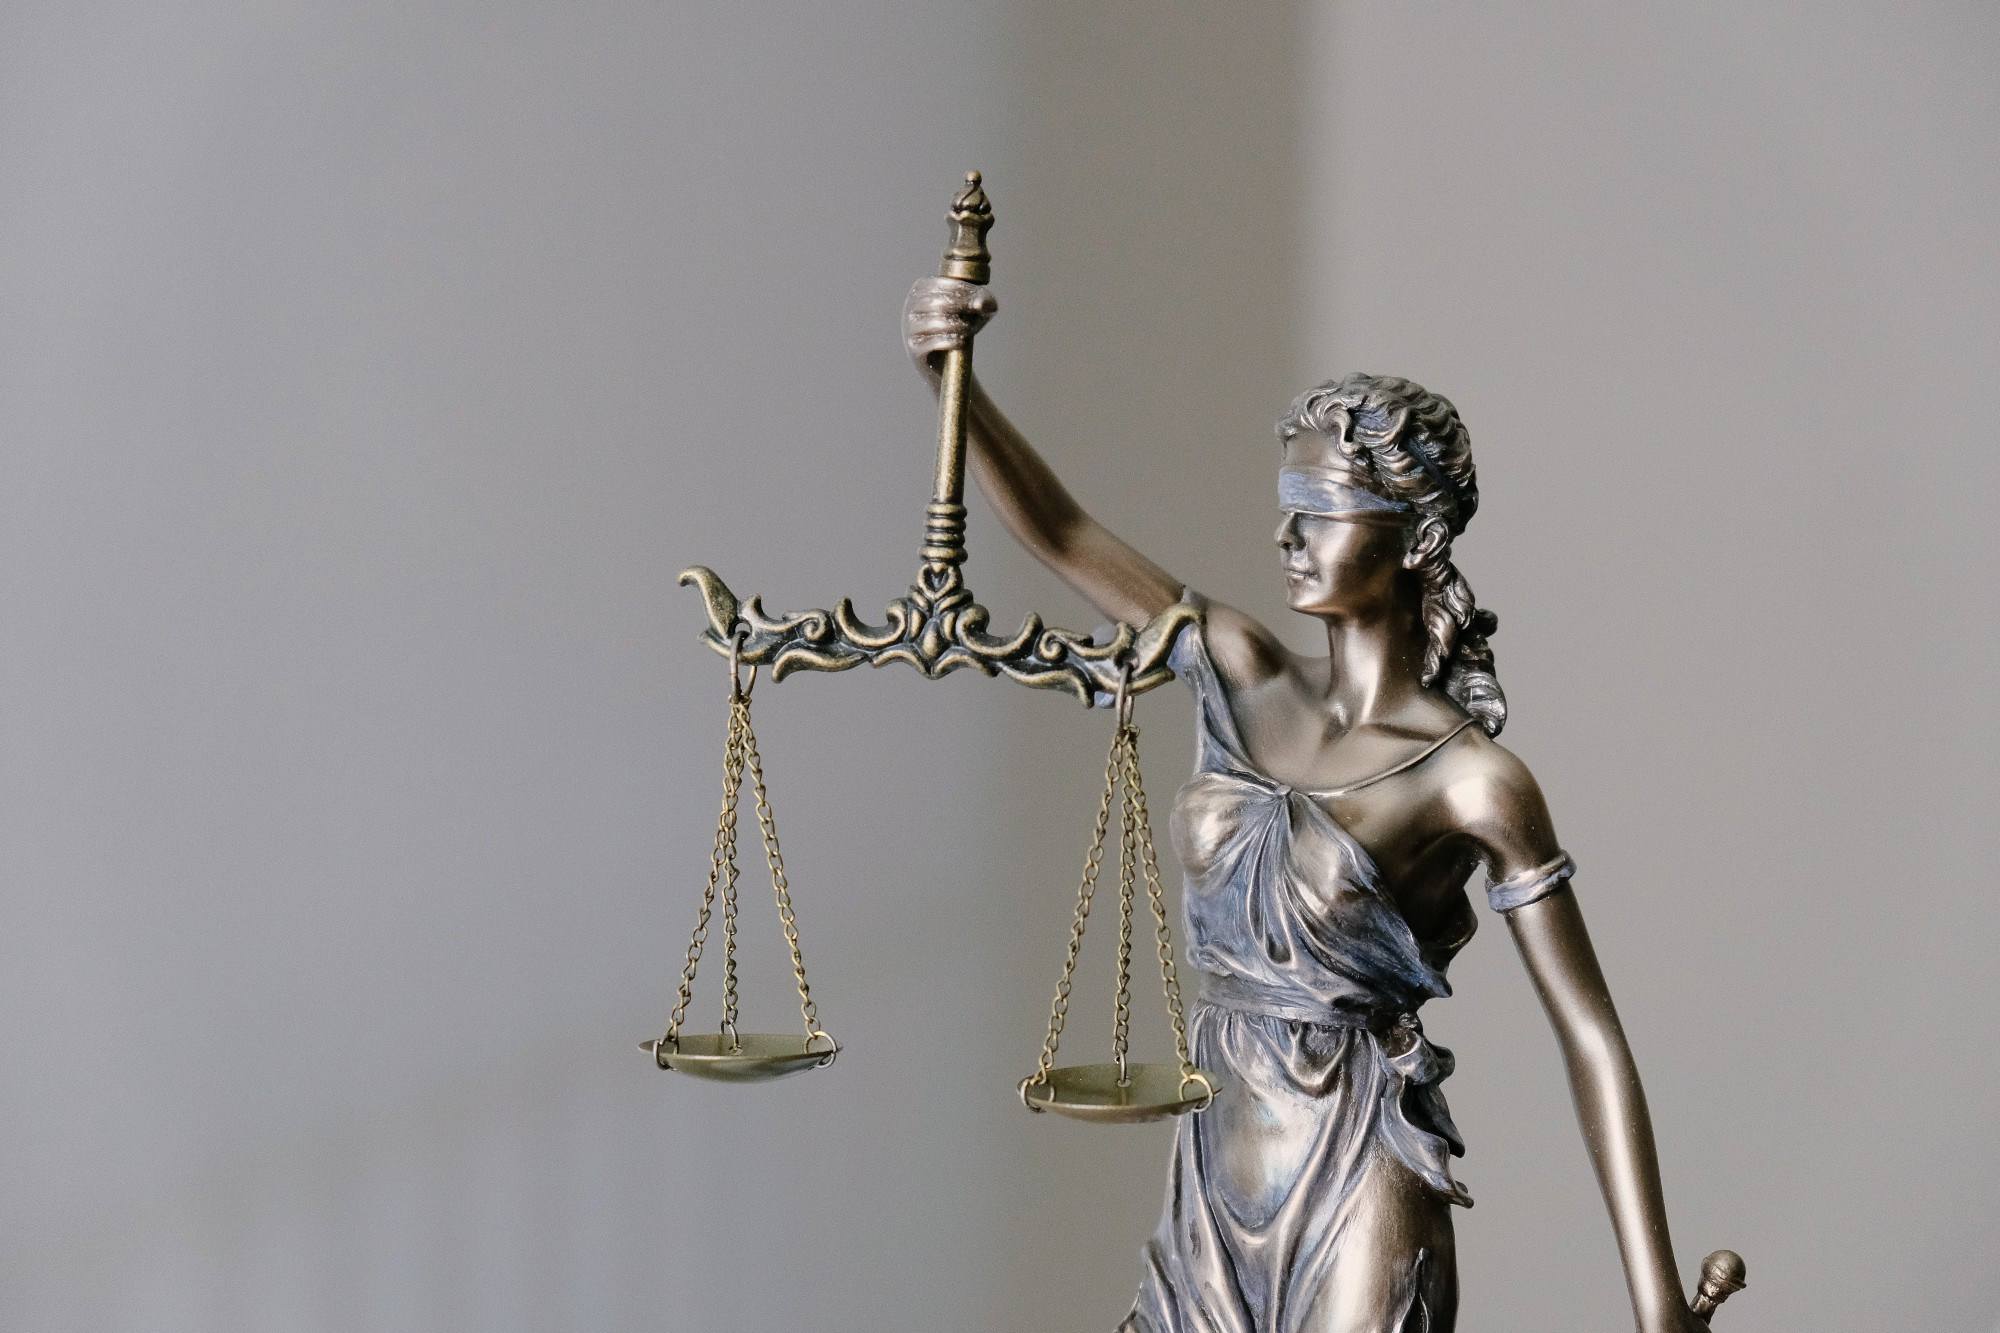 statue of Justice, blindfolded and holding scales